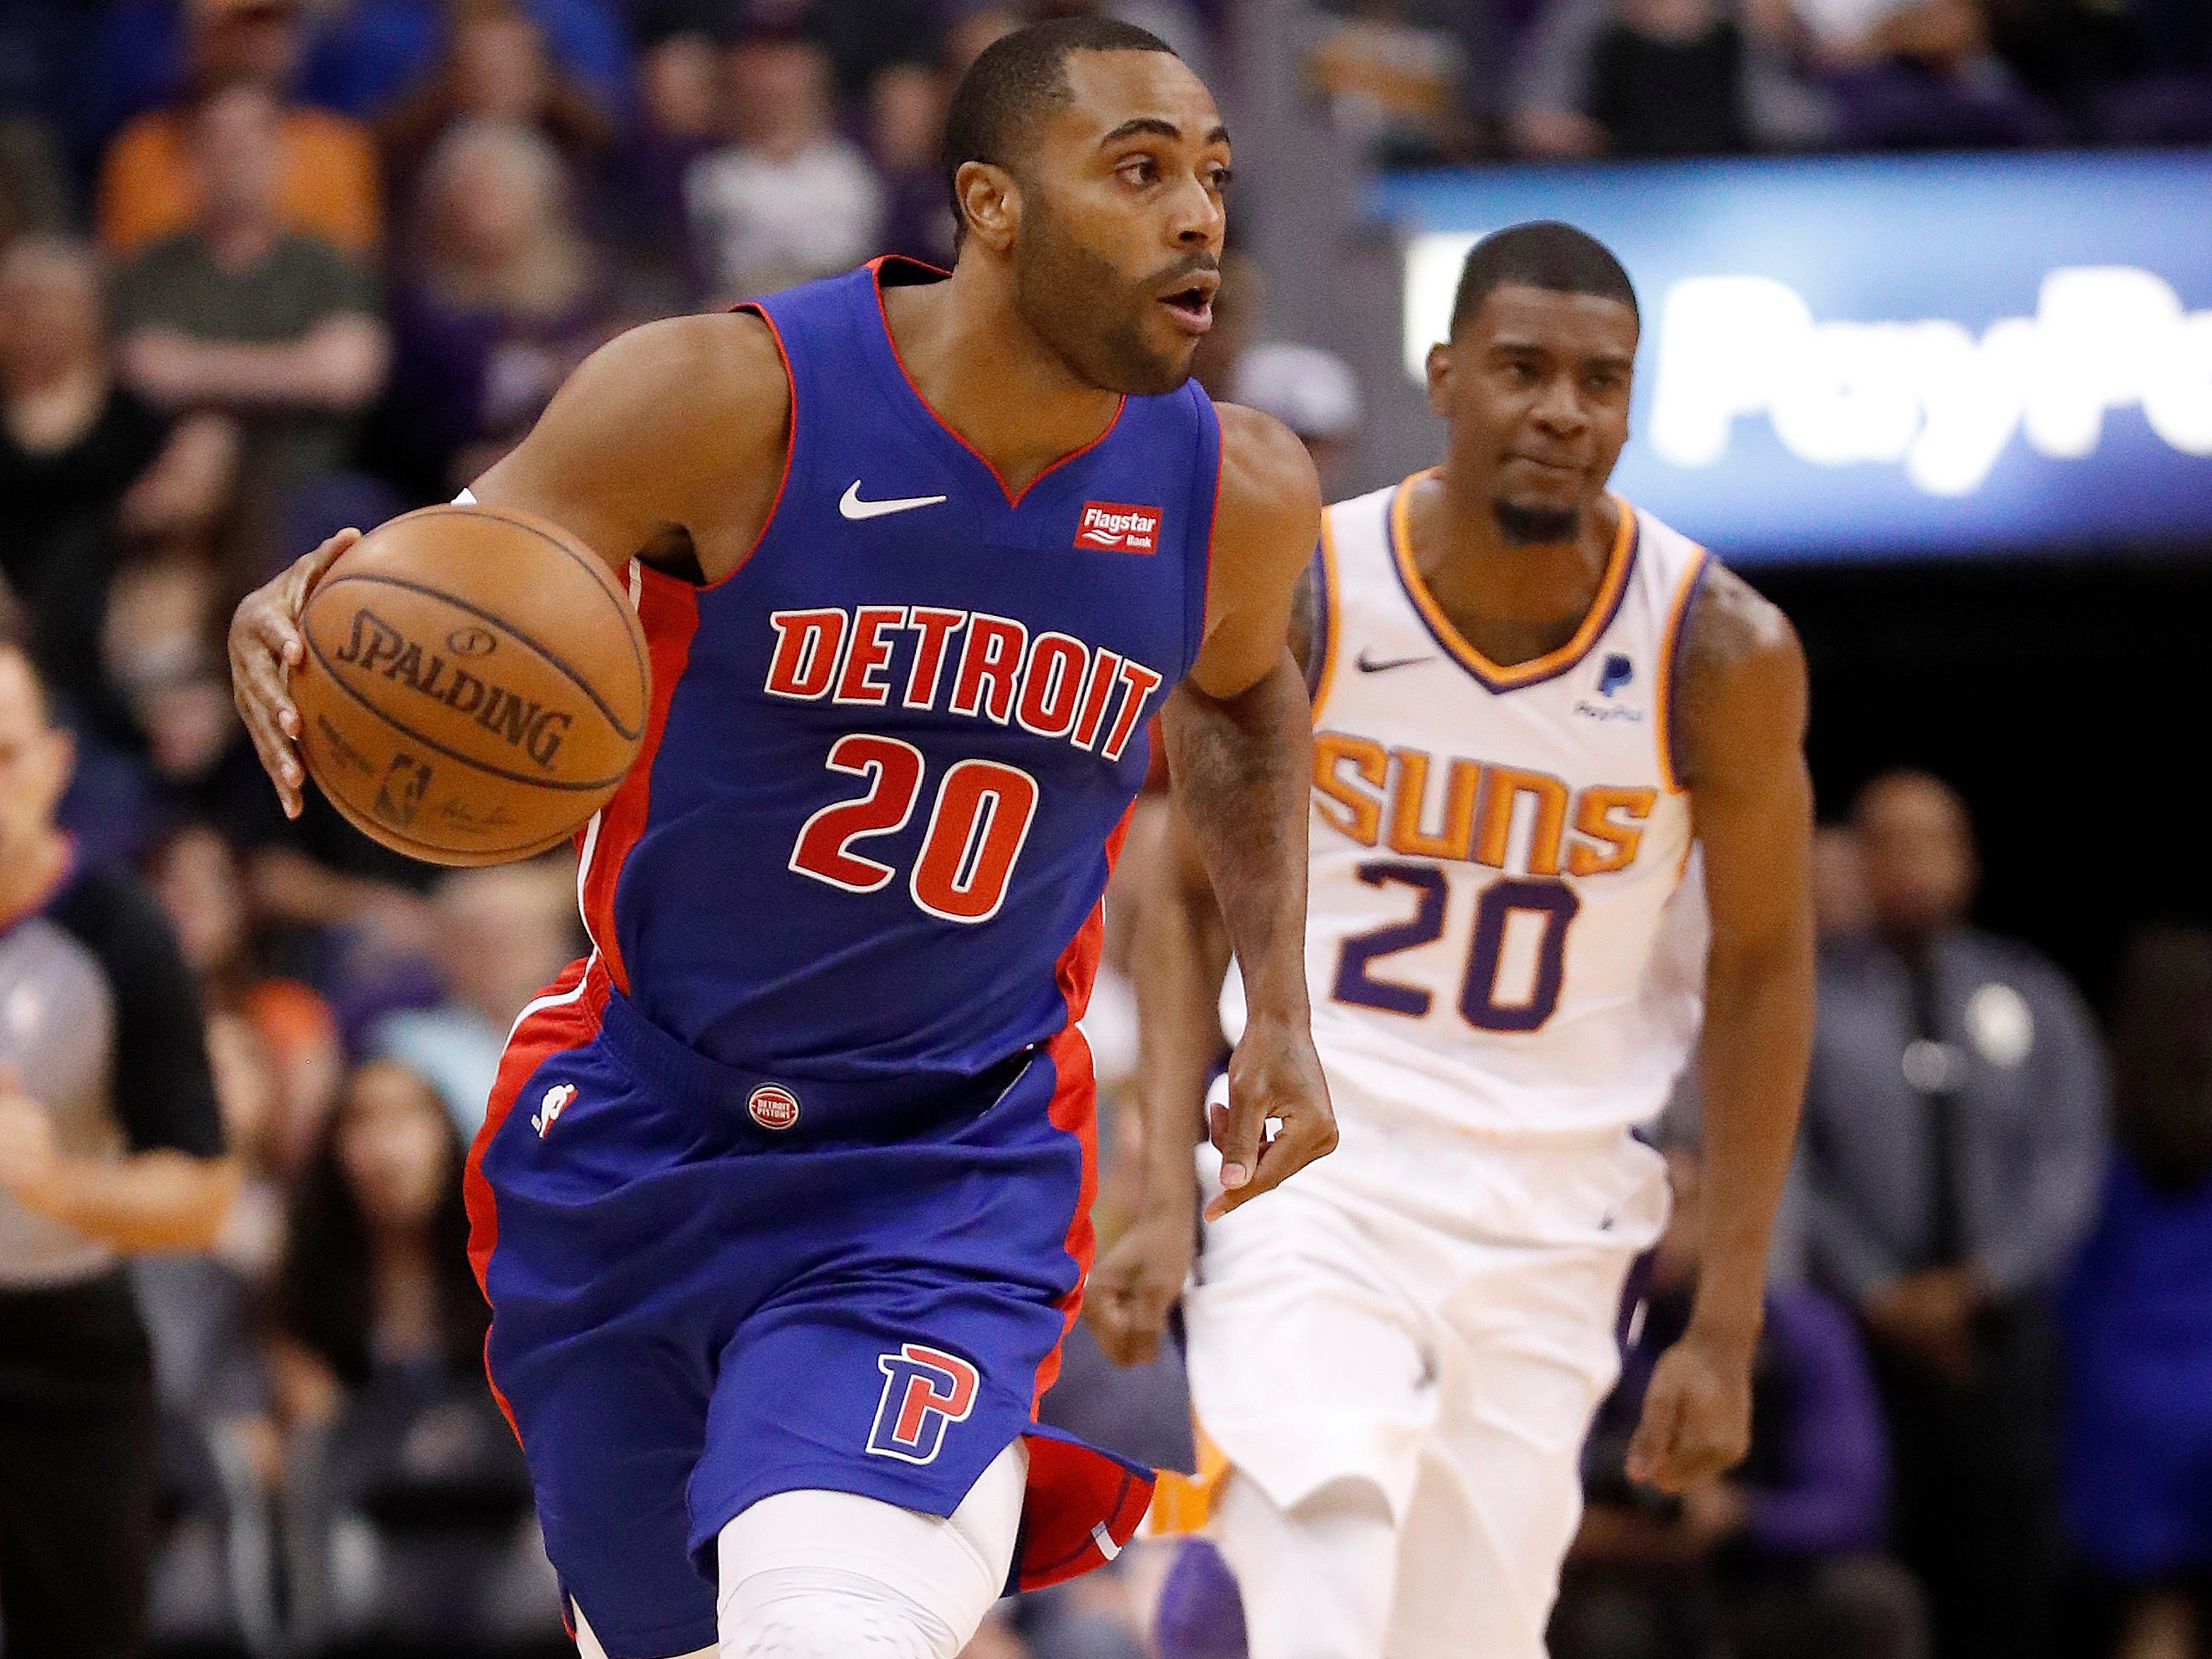 Detroit Pistons guard Wayne Ellington (20) moves the ball up as Phoenix Suns forward Josh Jackson (20) trails during the first half of an NBA basketball game Thursday, March 21, 2019, in Phoenix.